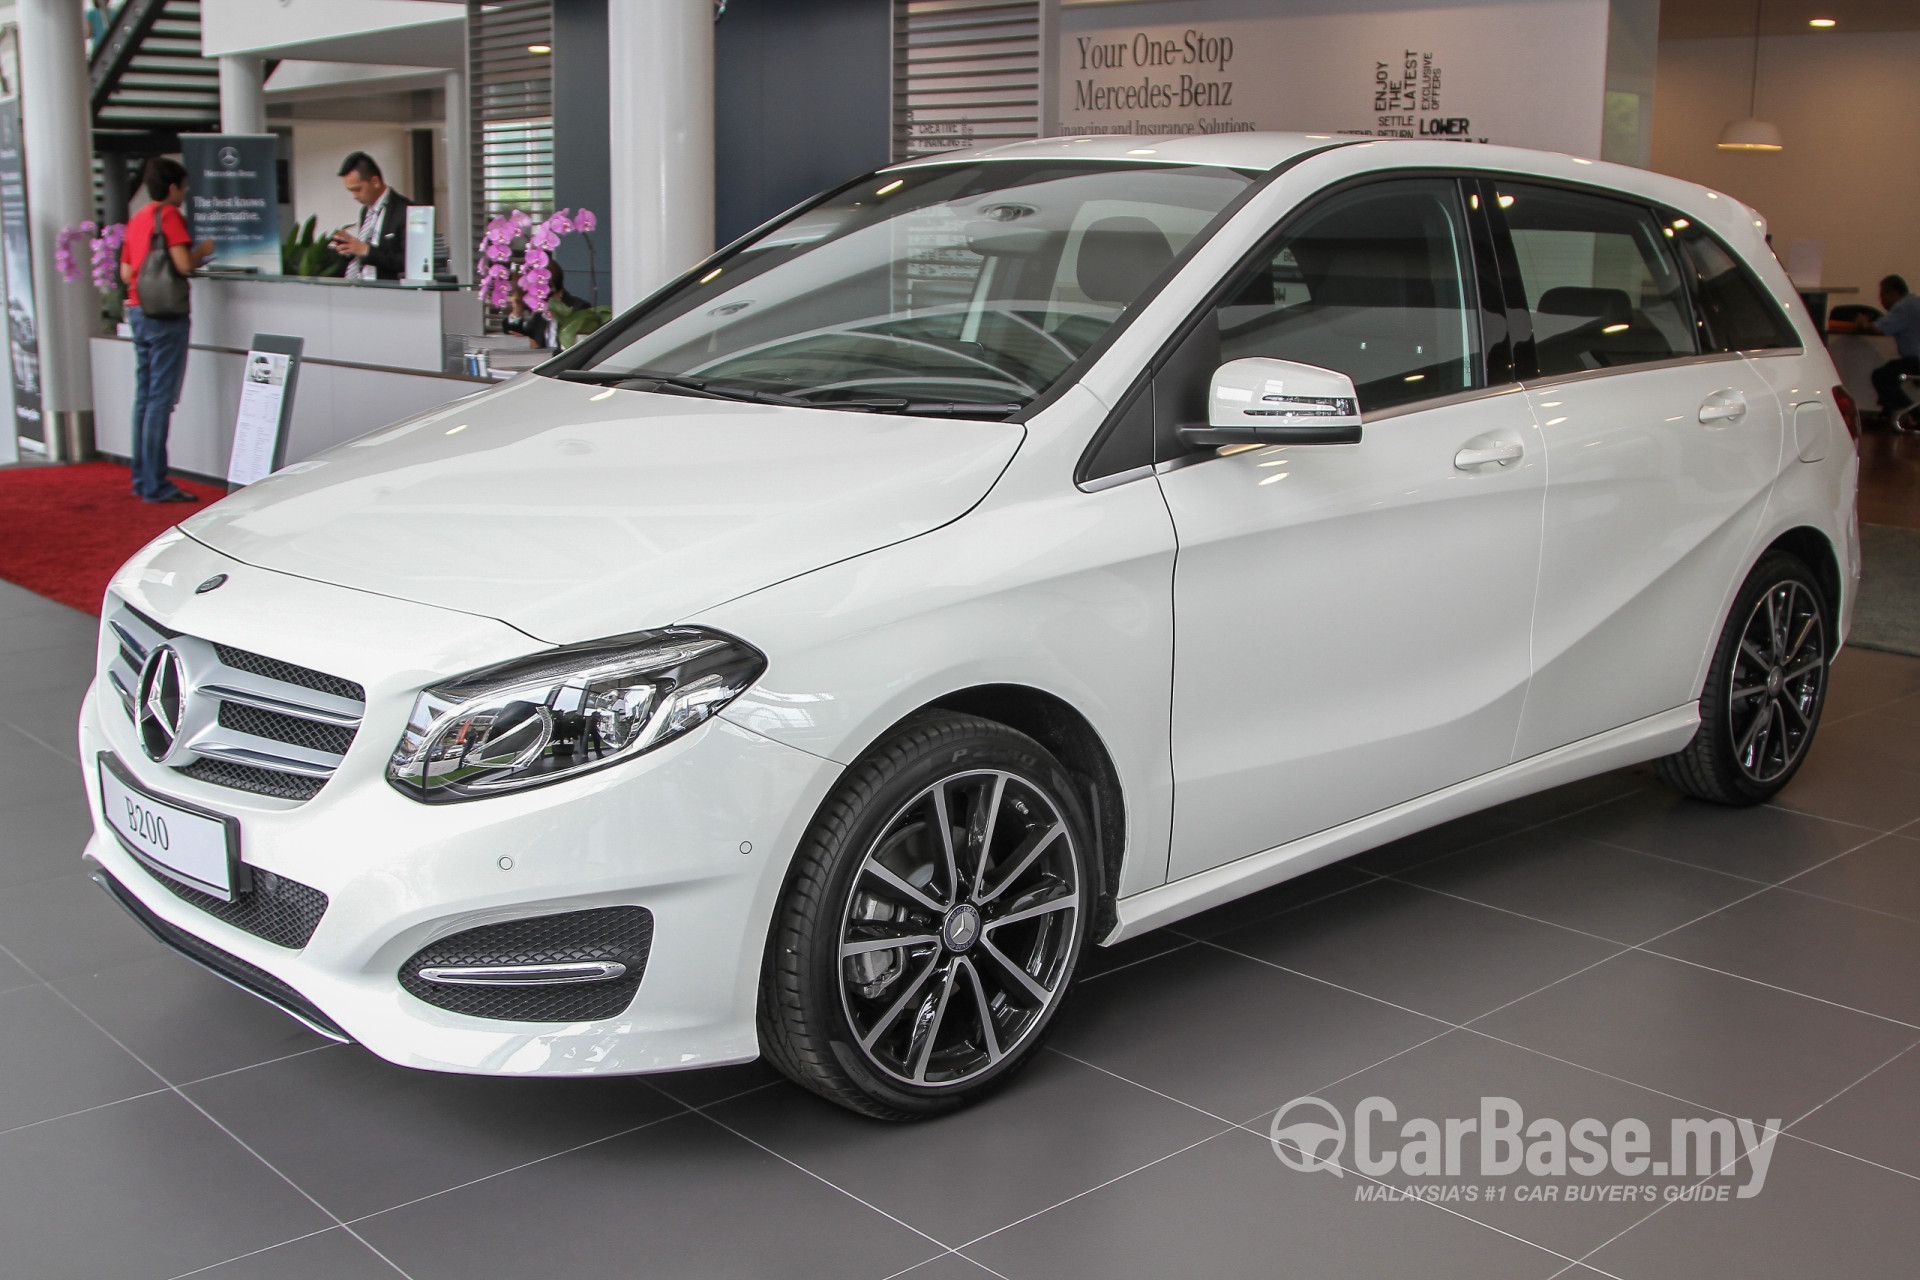 Mercedes benz b class w246 facelift 2015 exterior image for Mercedes benz b class specifications